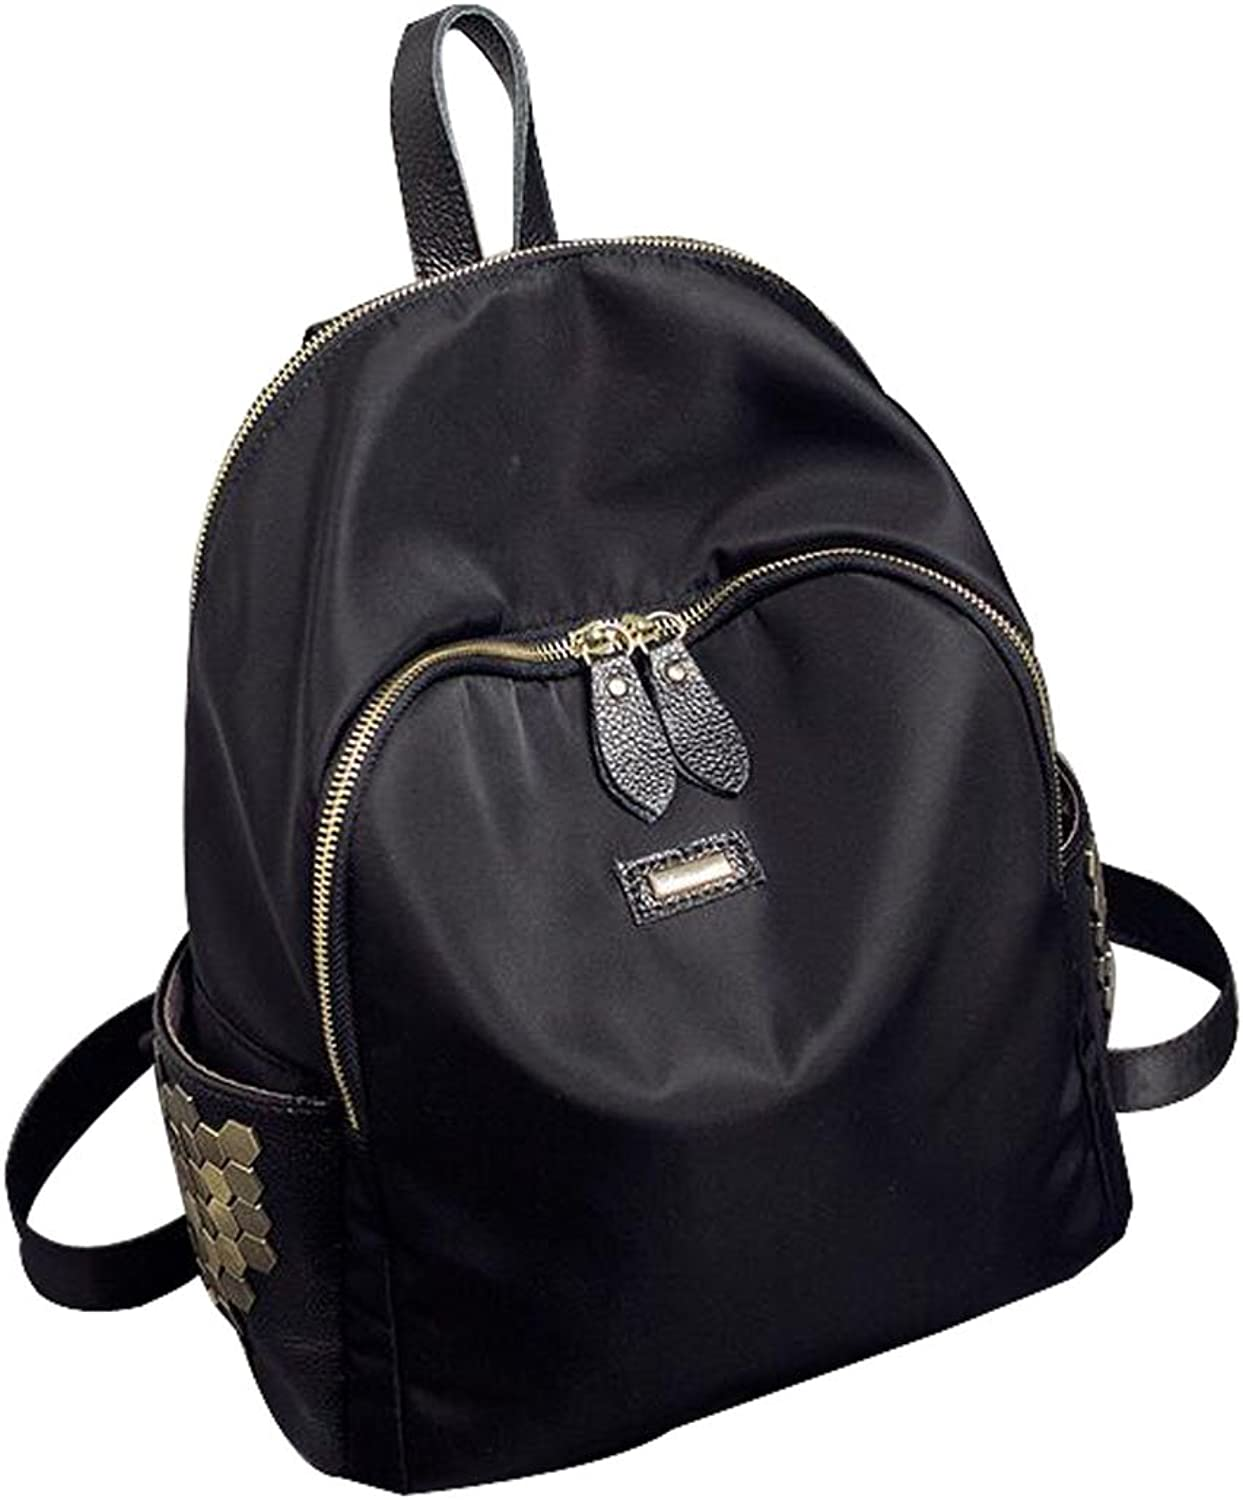 CNFIP Ms Rivet Backpack Genuine Leather Oxford Cloth,S